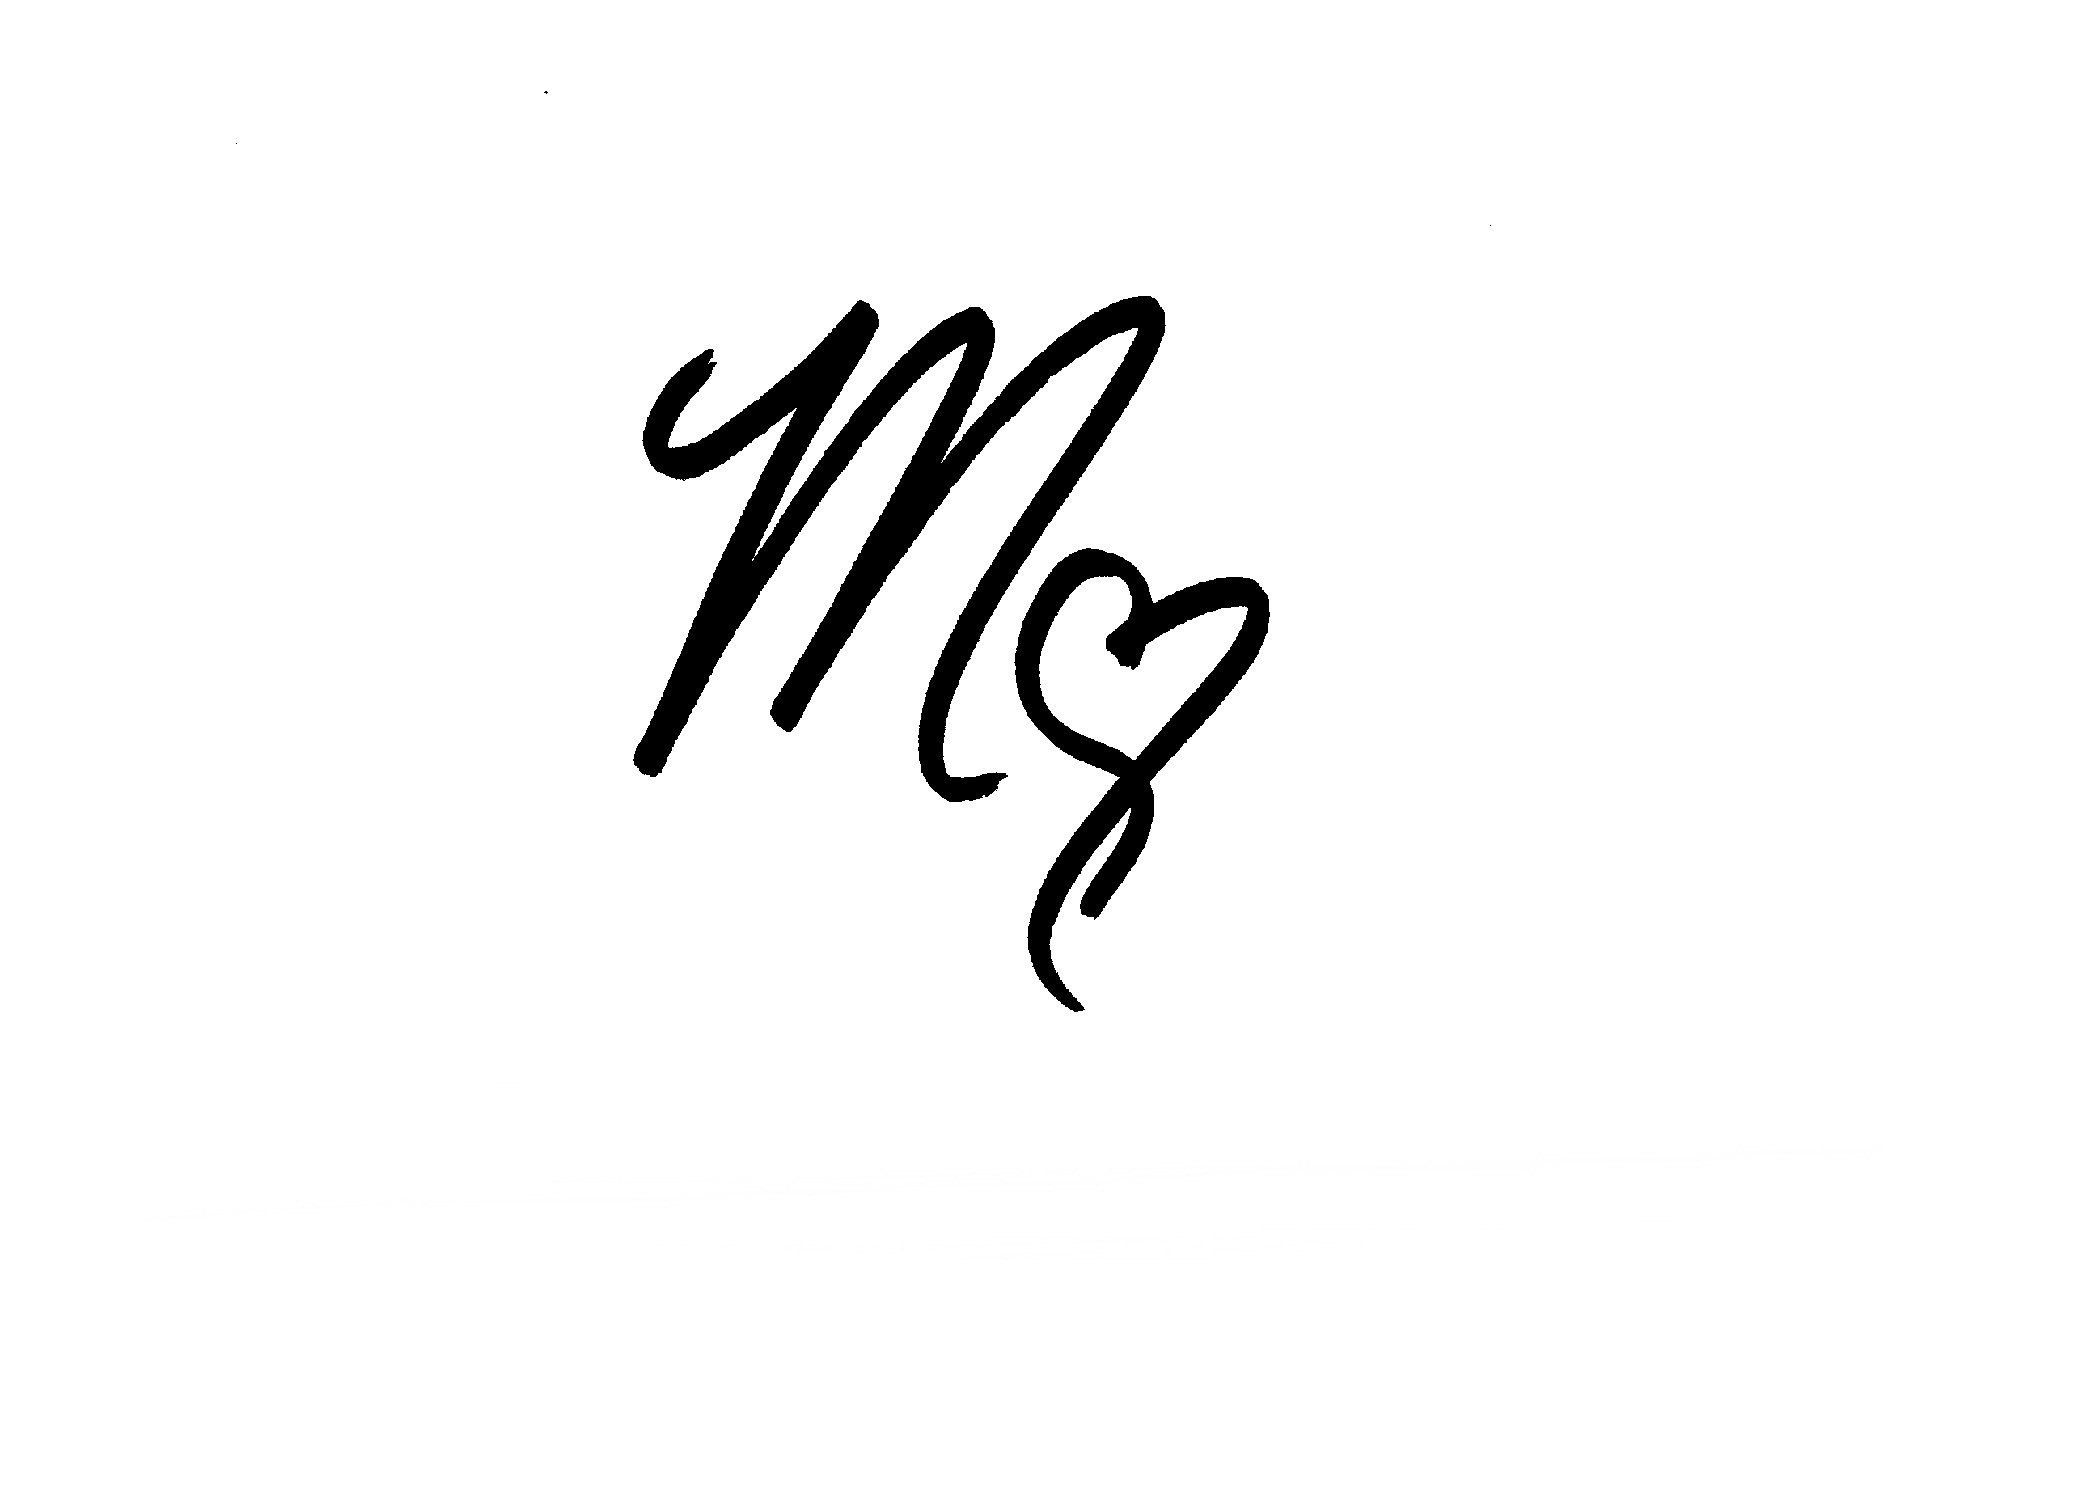 Mri Scott ElBey's Signature